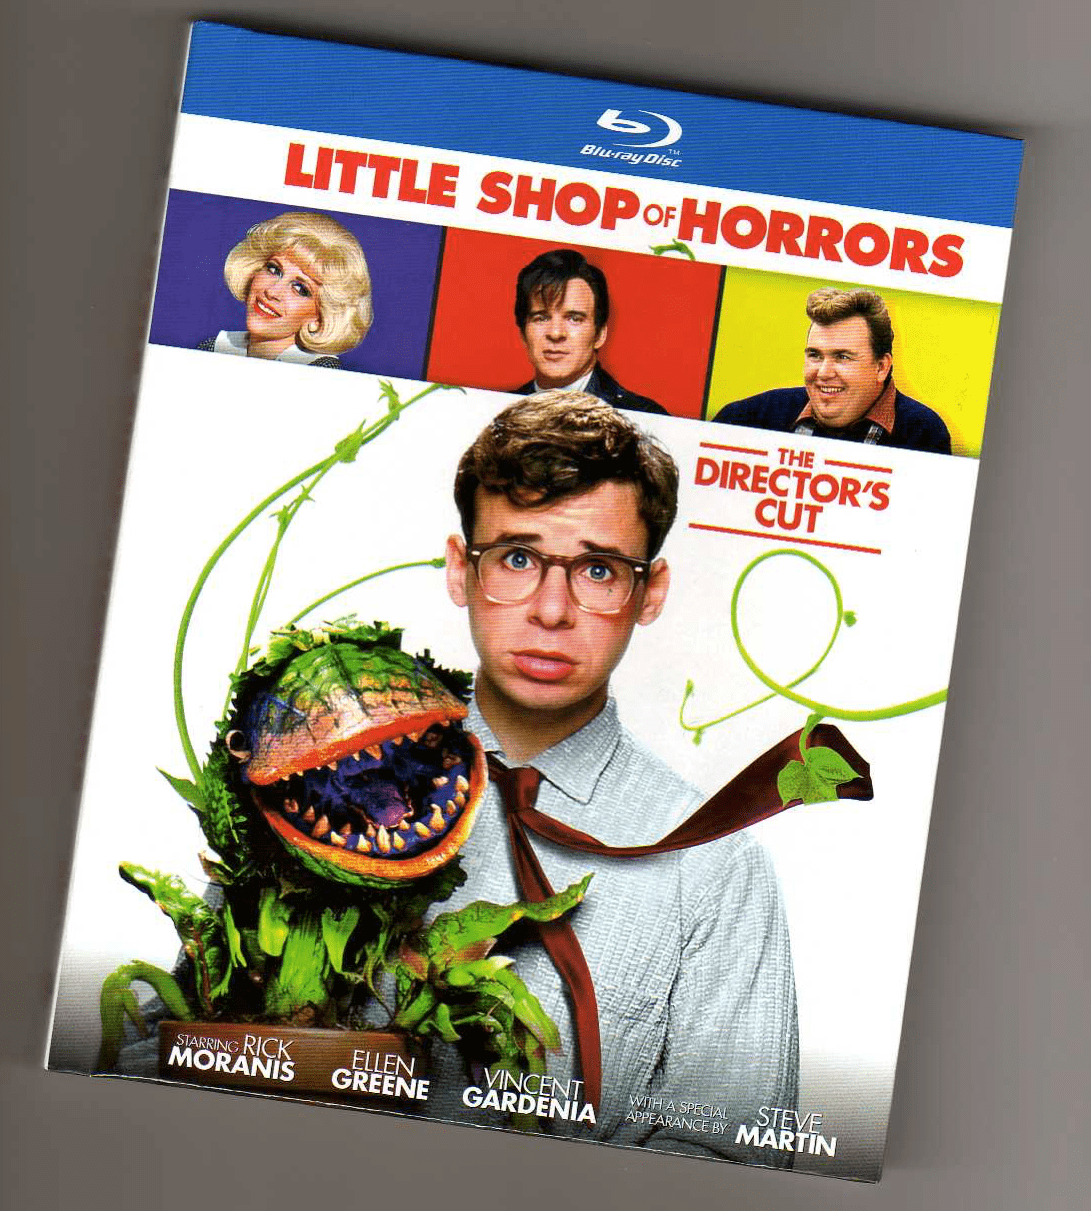 Little Shop of Horrors, Director's Cut Blu-Ray Release Booklet